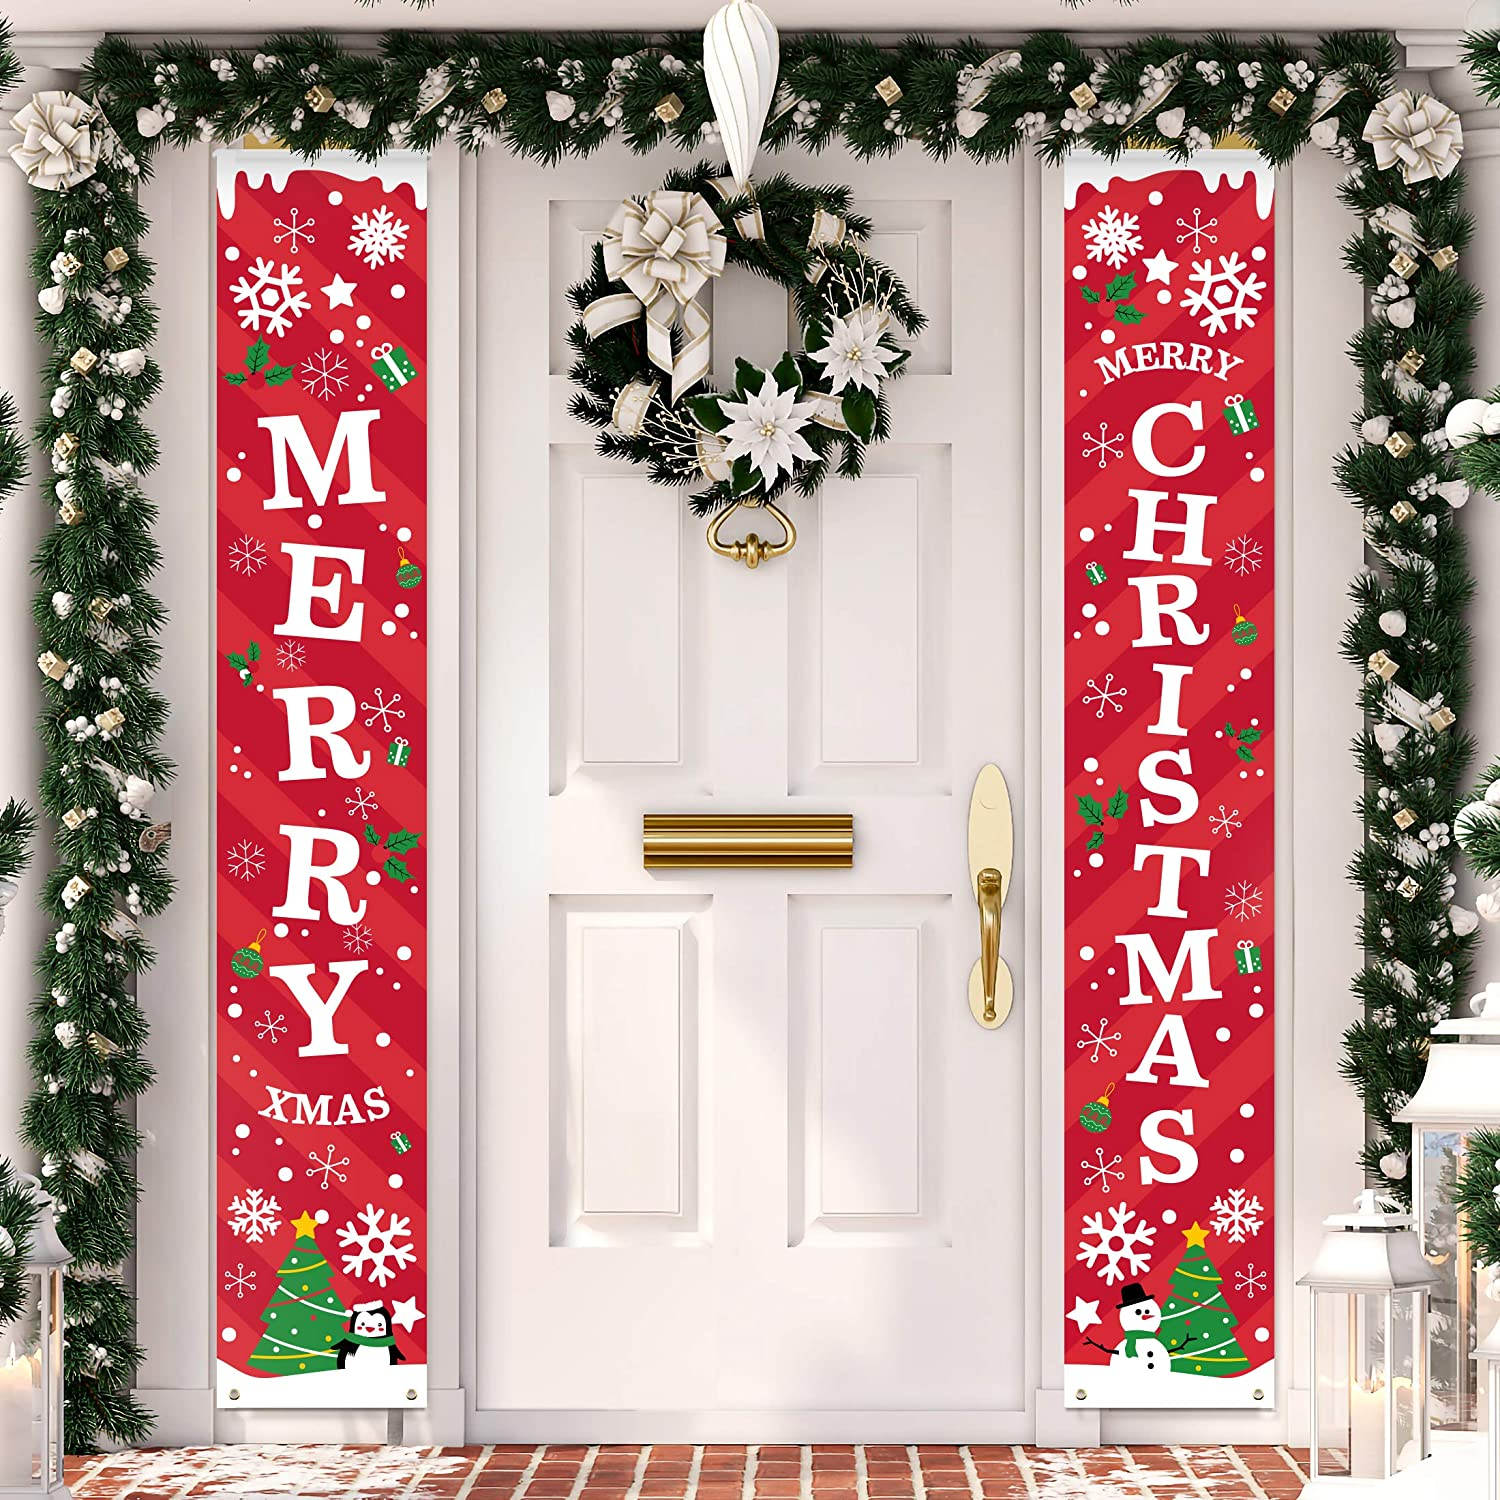 Christmas Sale! Porch Banner Decoration | Merry Christmas